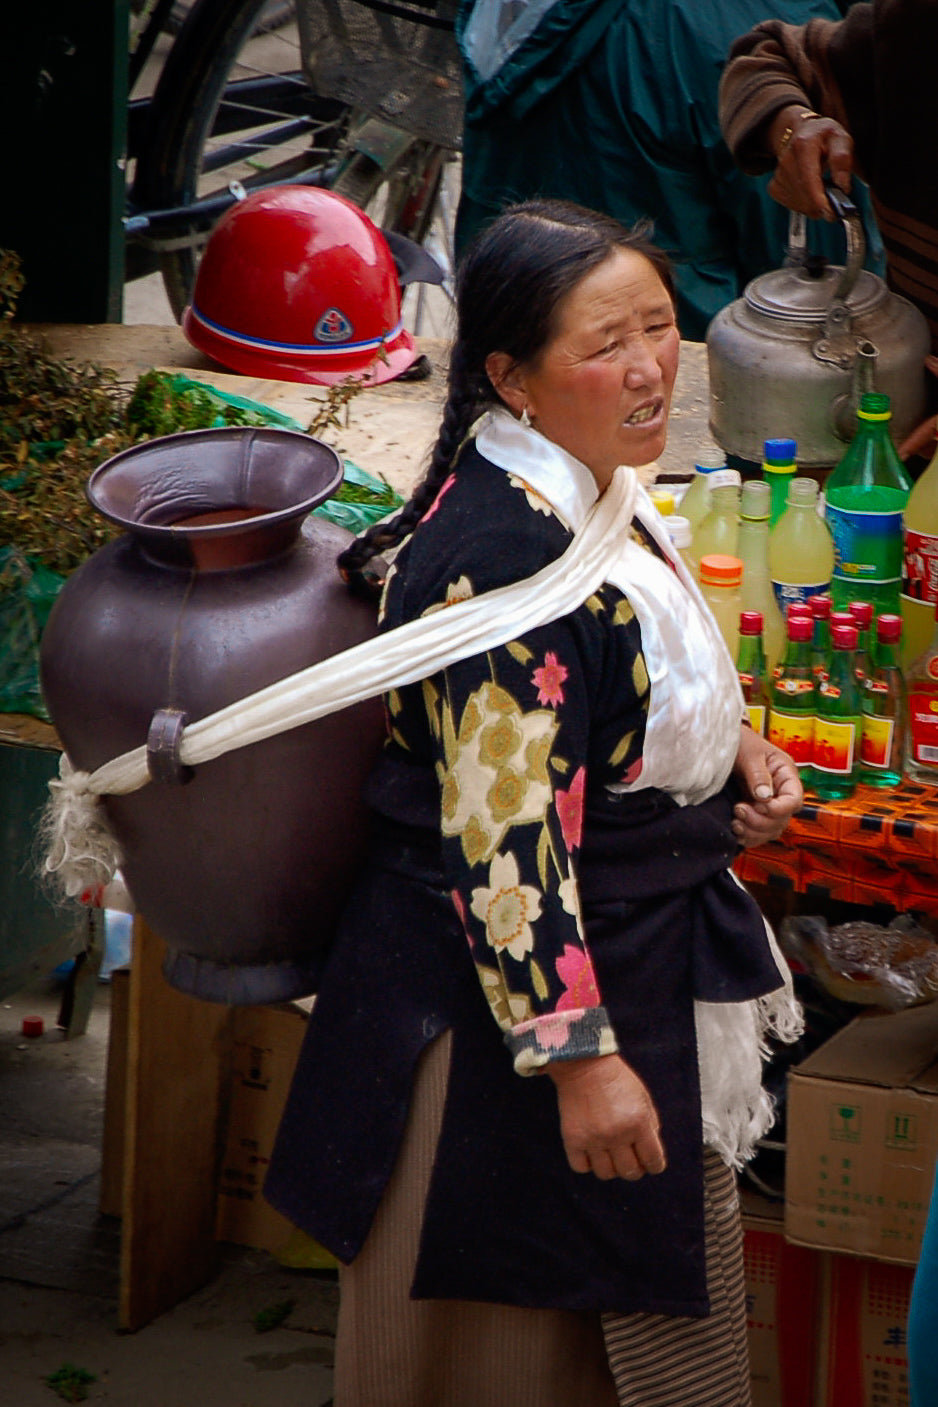 Tibetan Women Carrying a Jar on Her Back